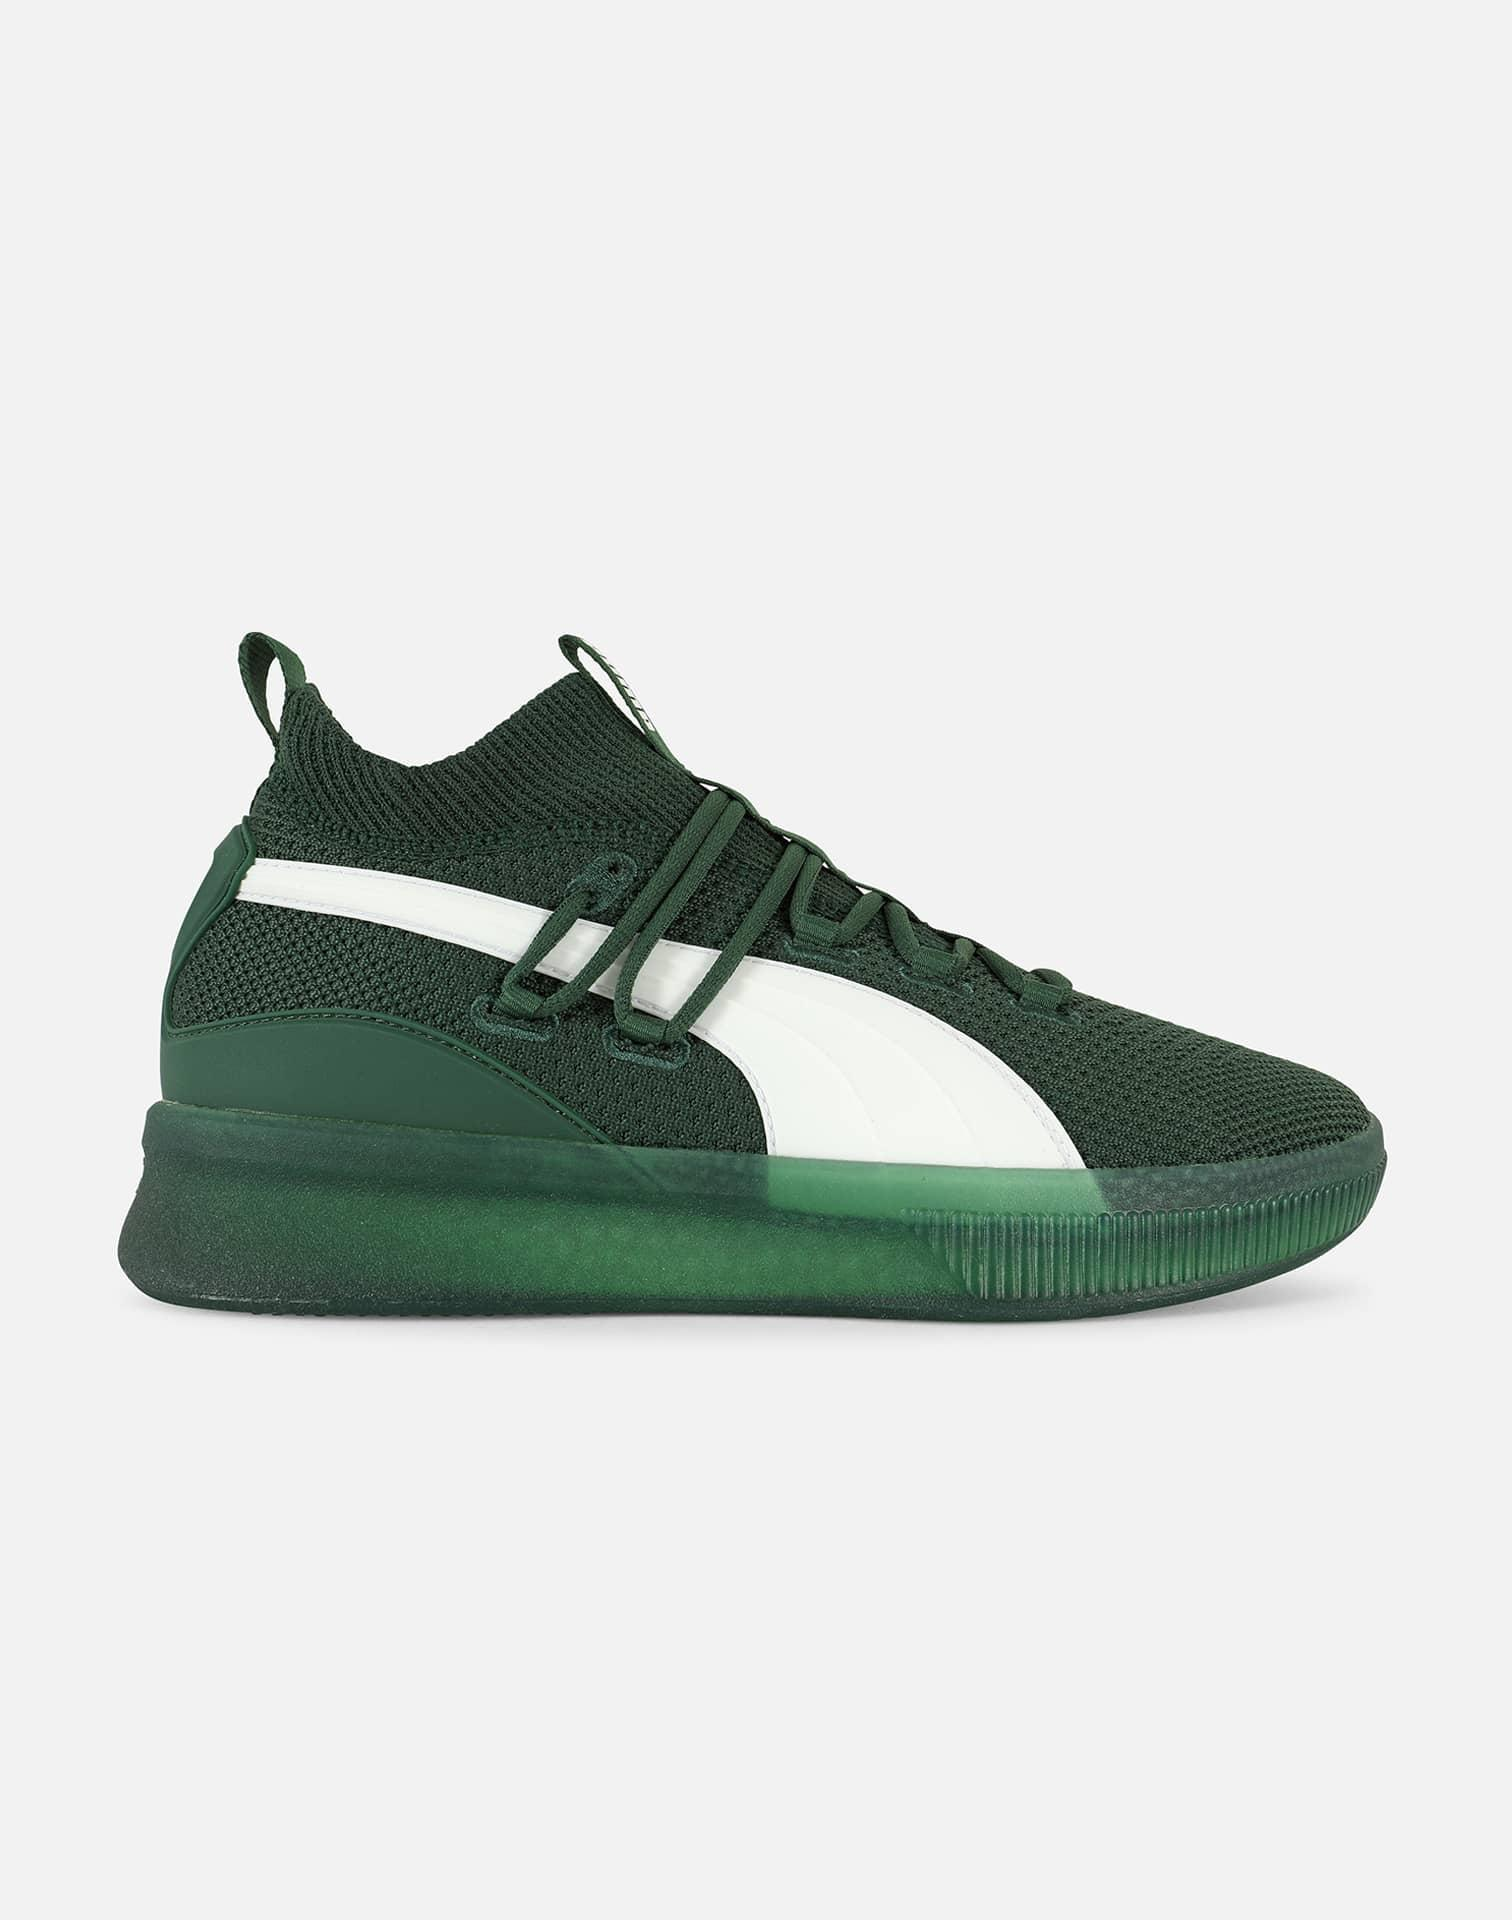 PUMA Rubber Clyde Court Gw in Green for